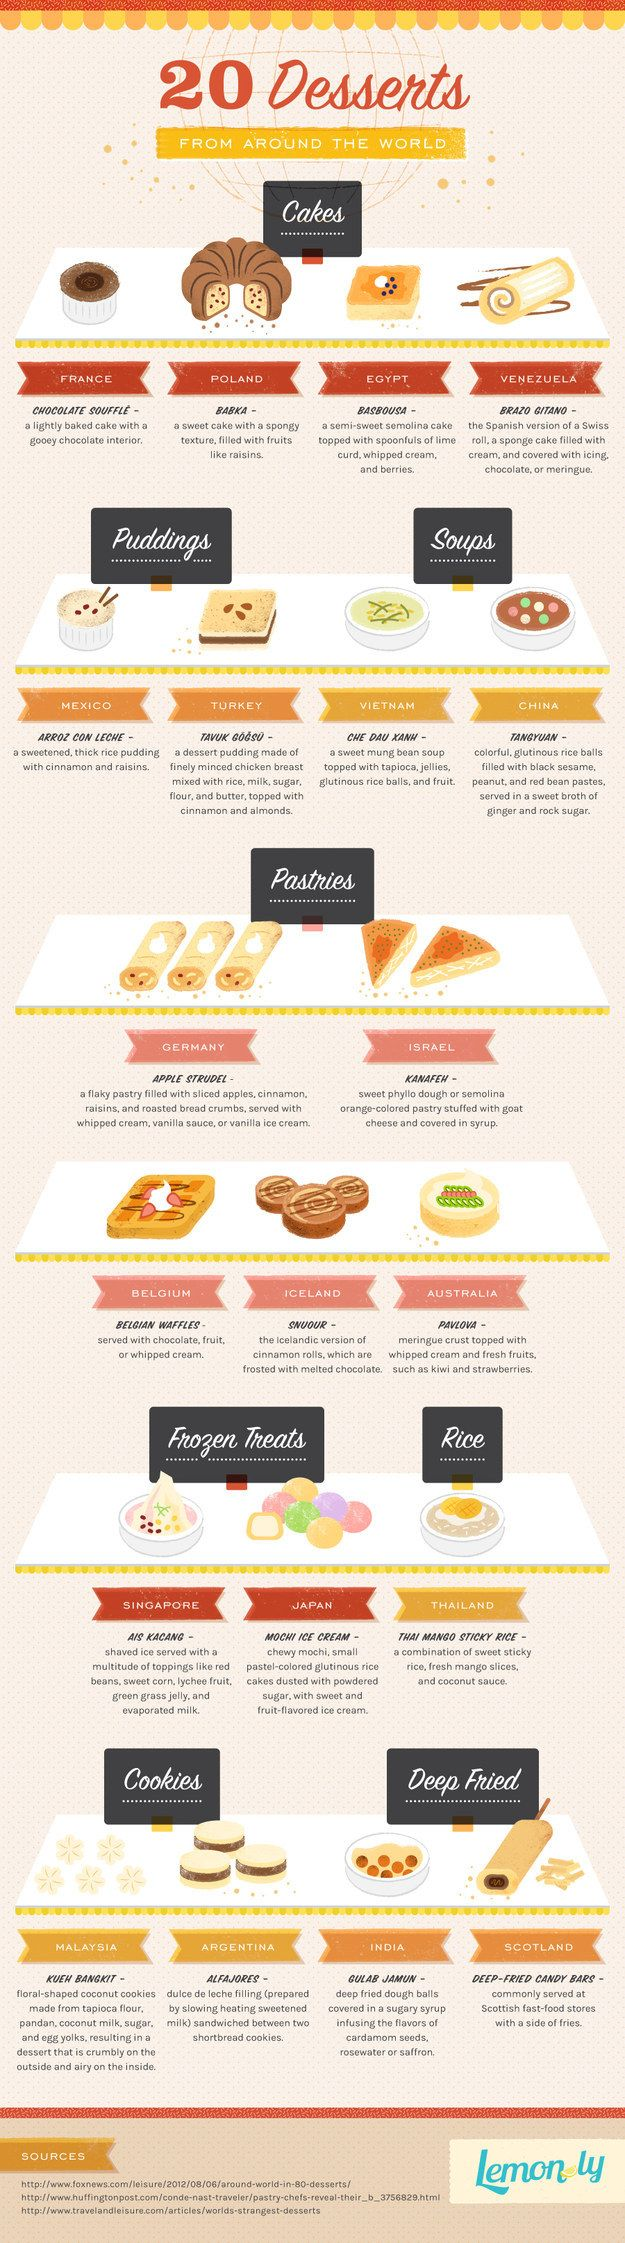 This chart of famous desserts from around the world: | Here Are 22 Diagrams For Anyone Who's Obsessed With Dessert